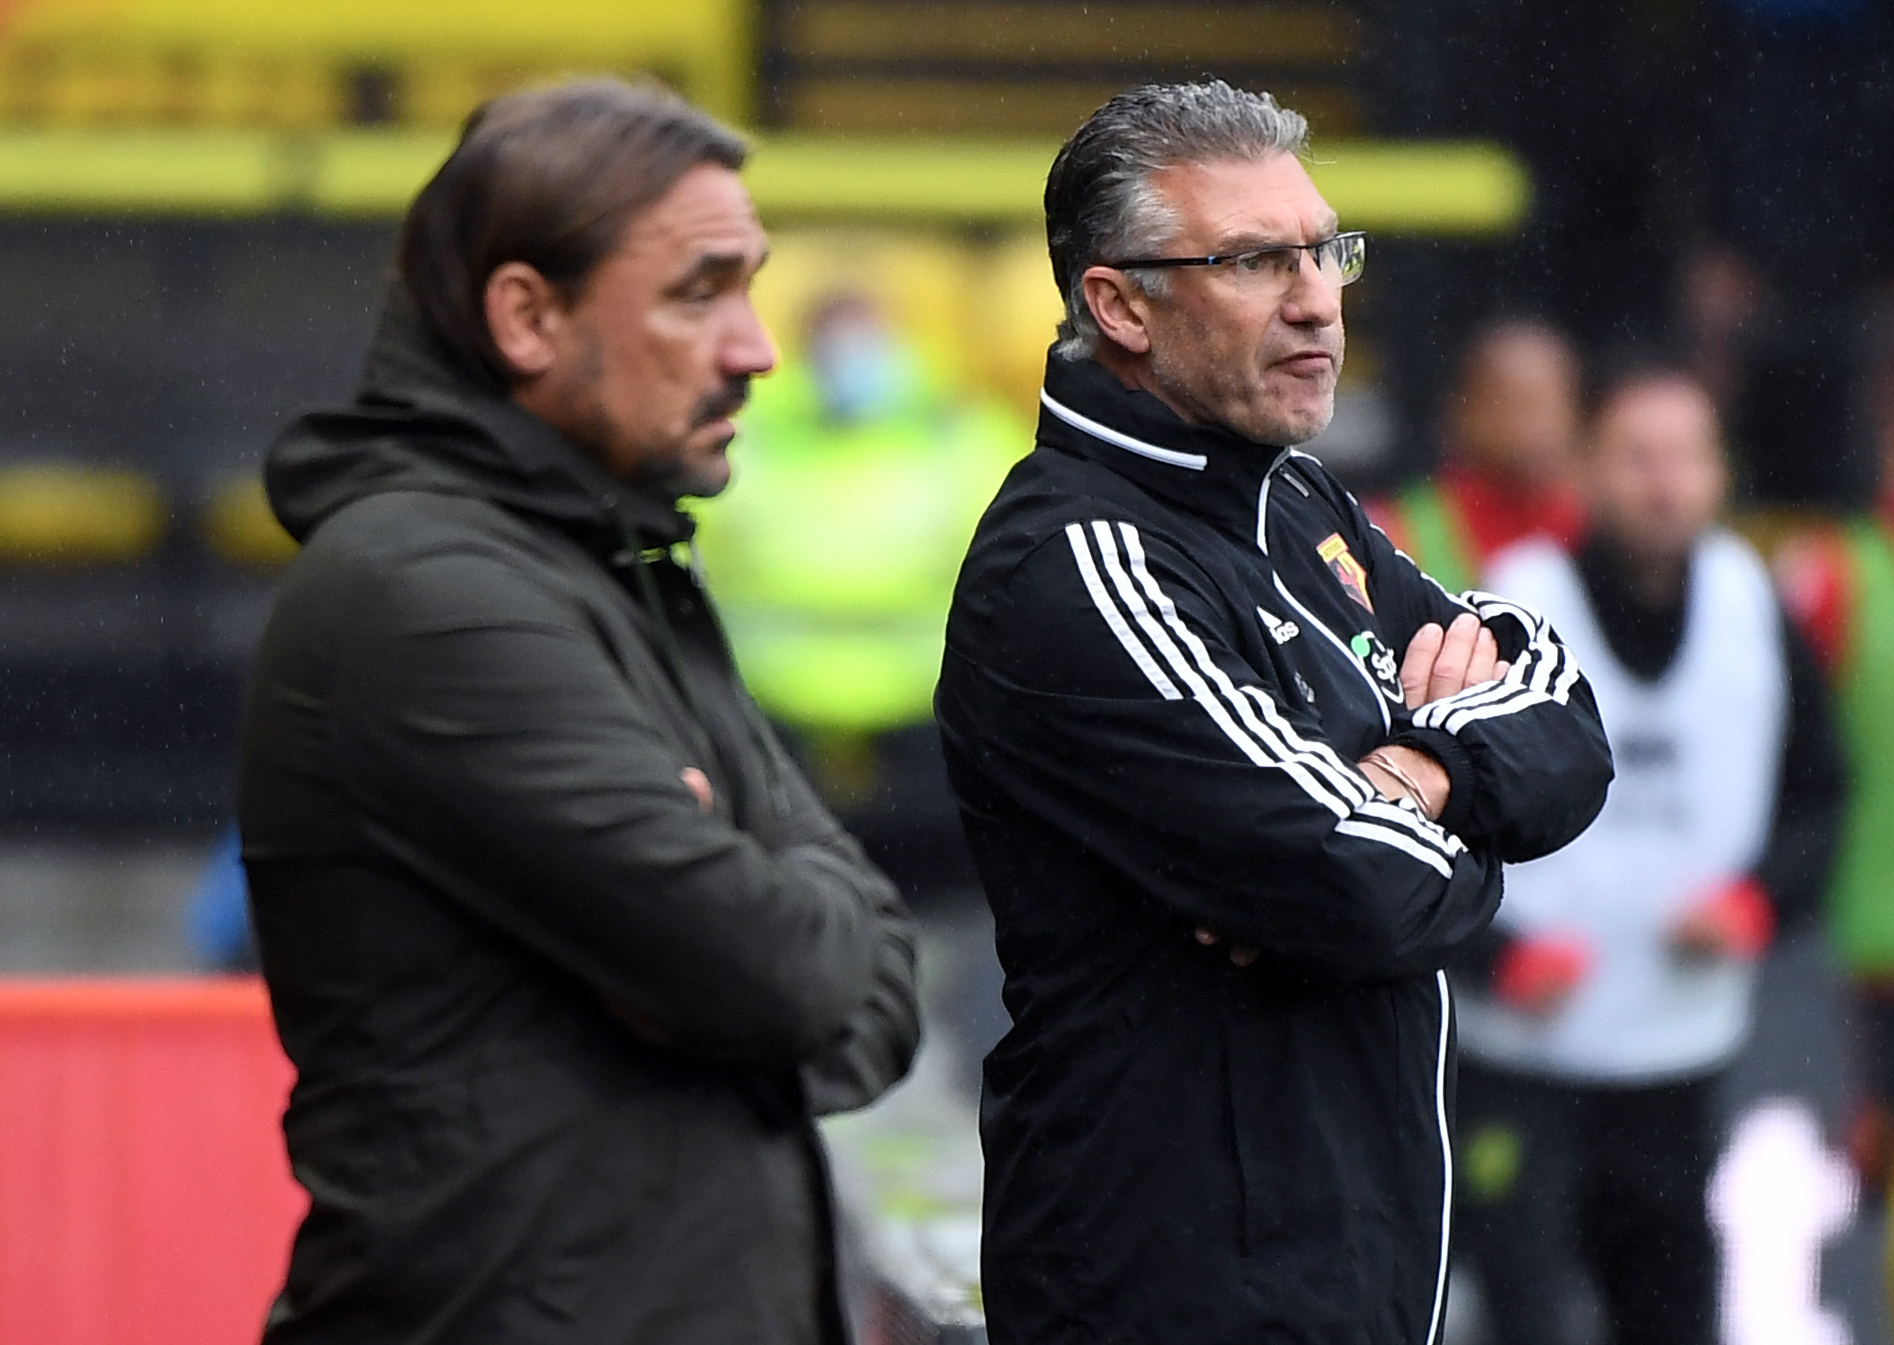 Watford manager Nigel Pearson during the Premier League match at Vicarage Road, Watford.